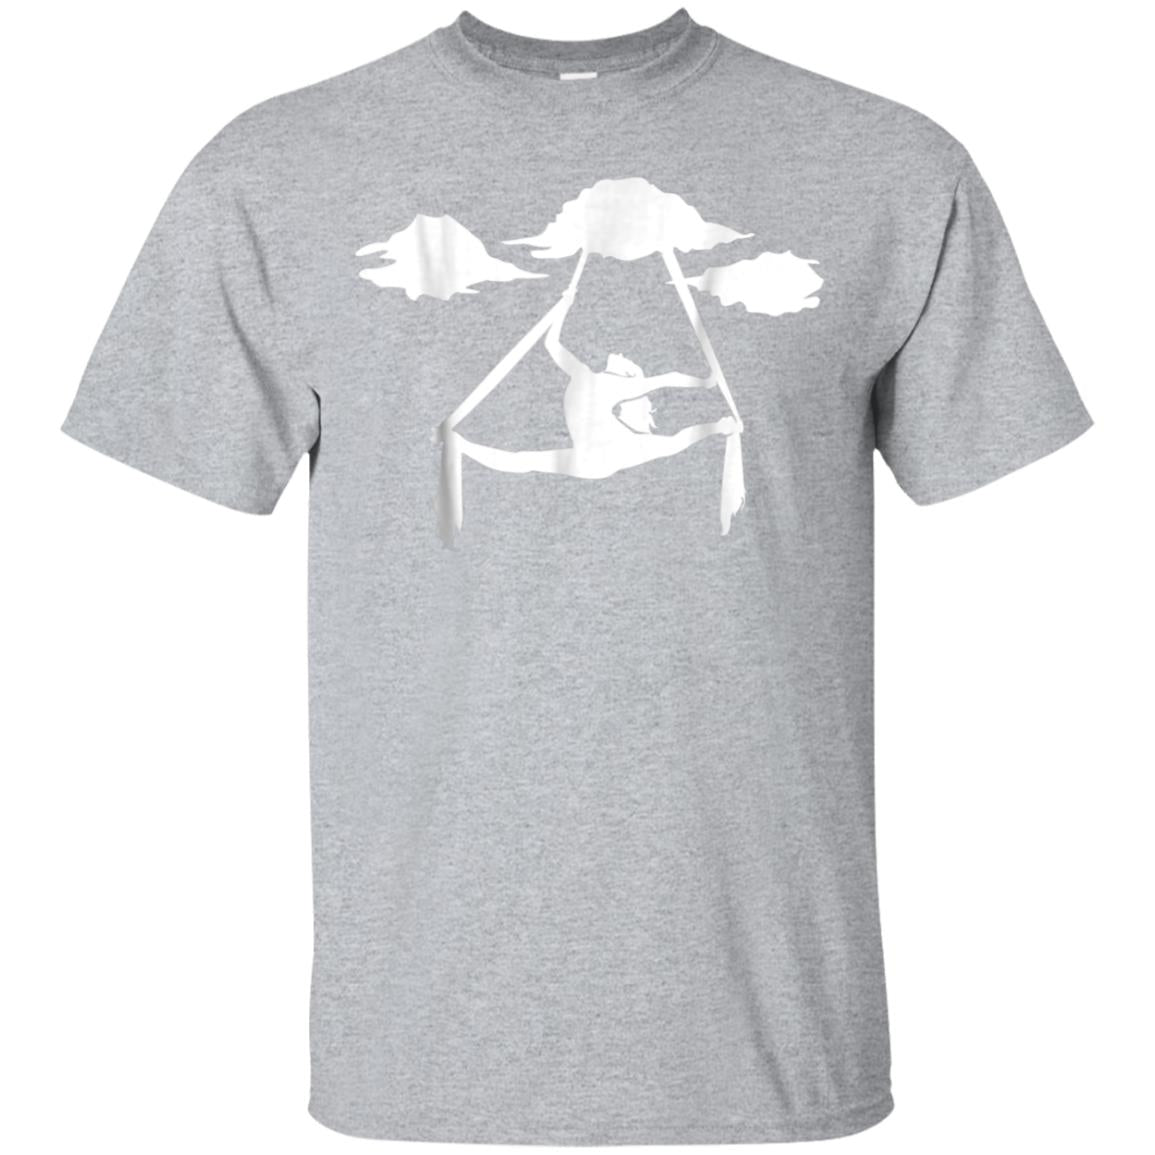 Aerial Silk Gifts Tshirt, Aerial Yoga Outfit For Girls 99promocode